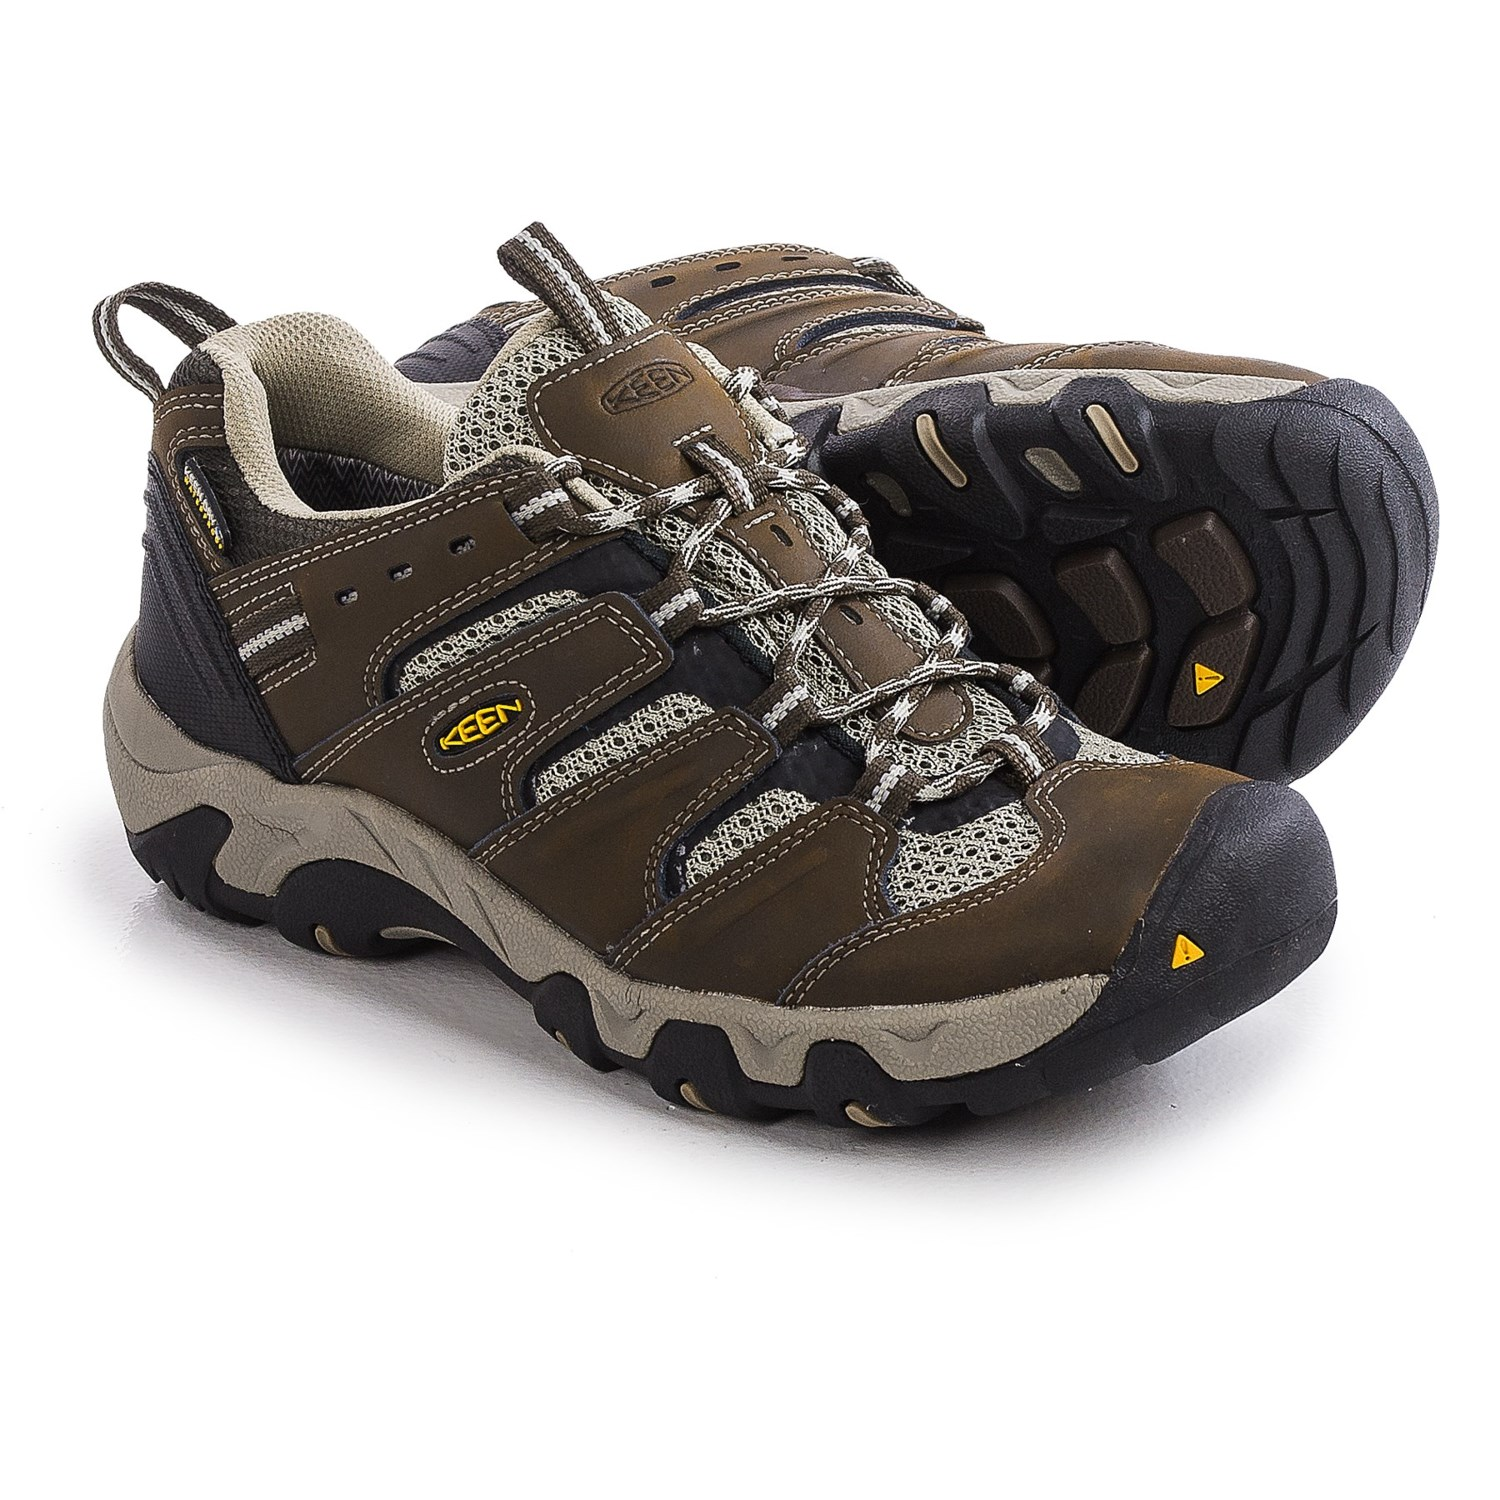 Keen Koven Trail Shoes (For Women) - Save 45%